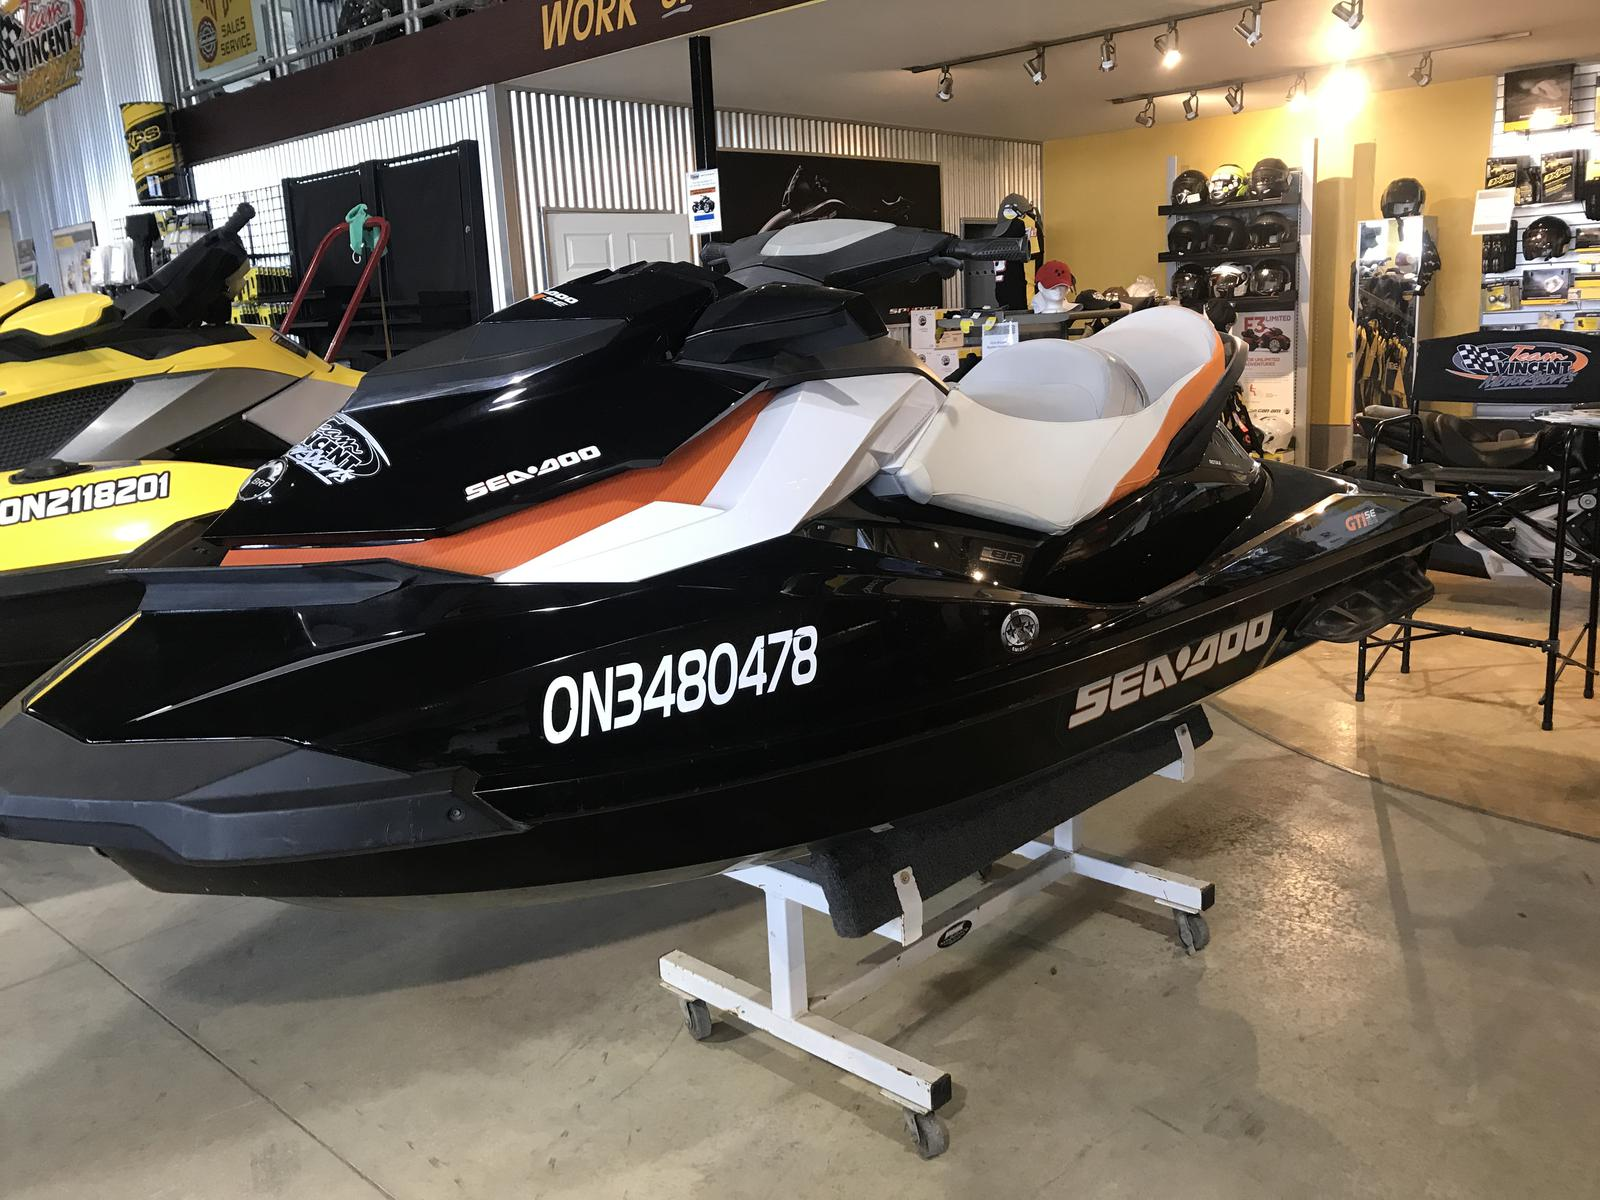 For Sale: 2012 Sea Doo Pwc Used Gti Se 155 ft<br/>Team Vincent Motorsports Inc